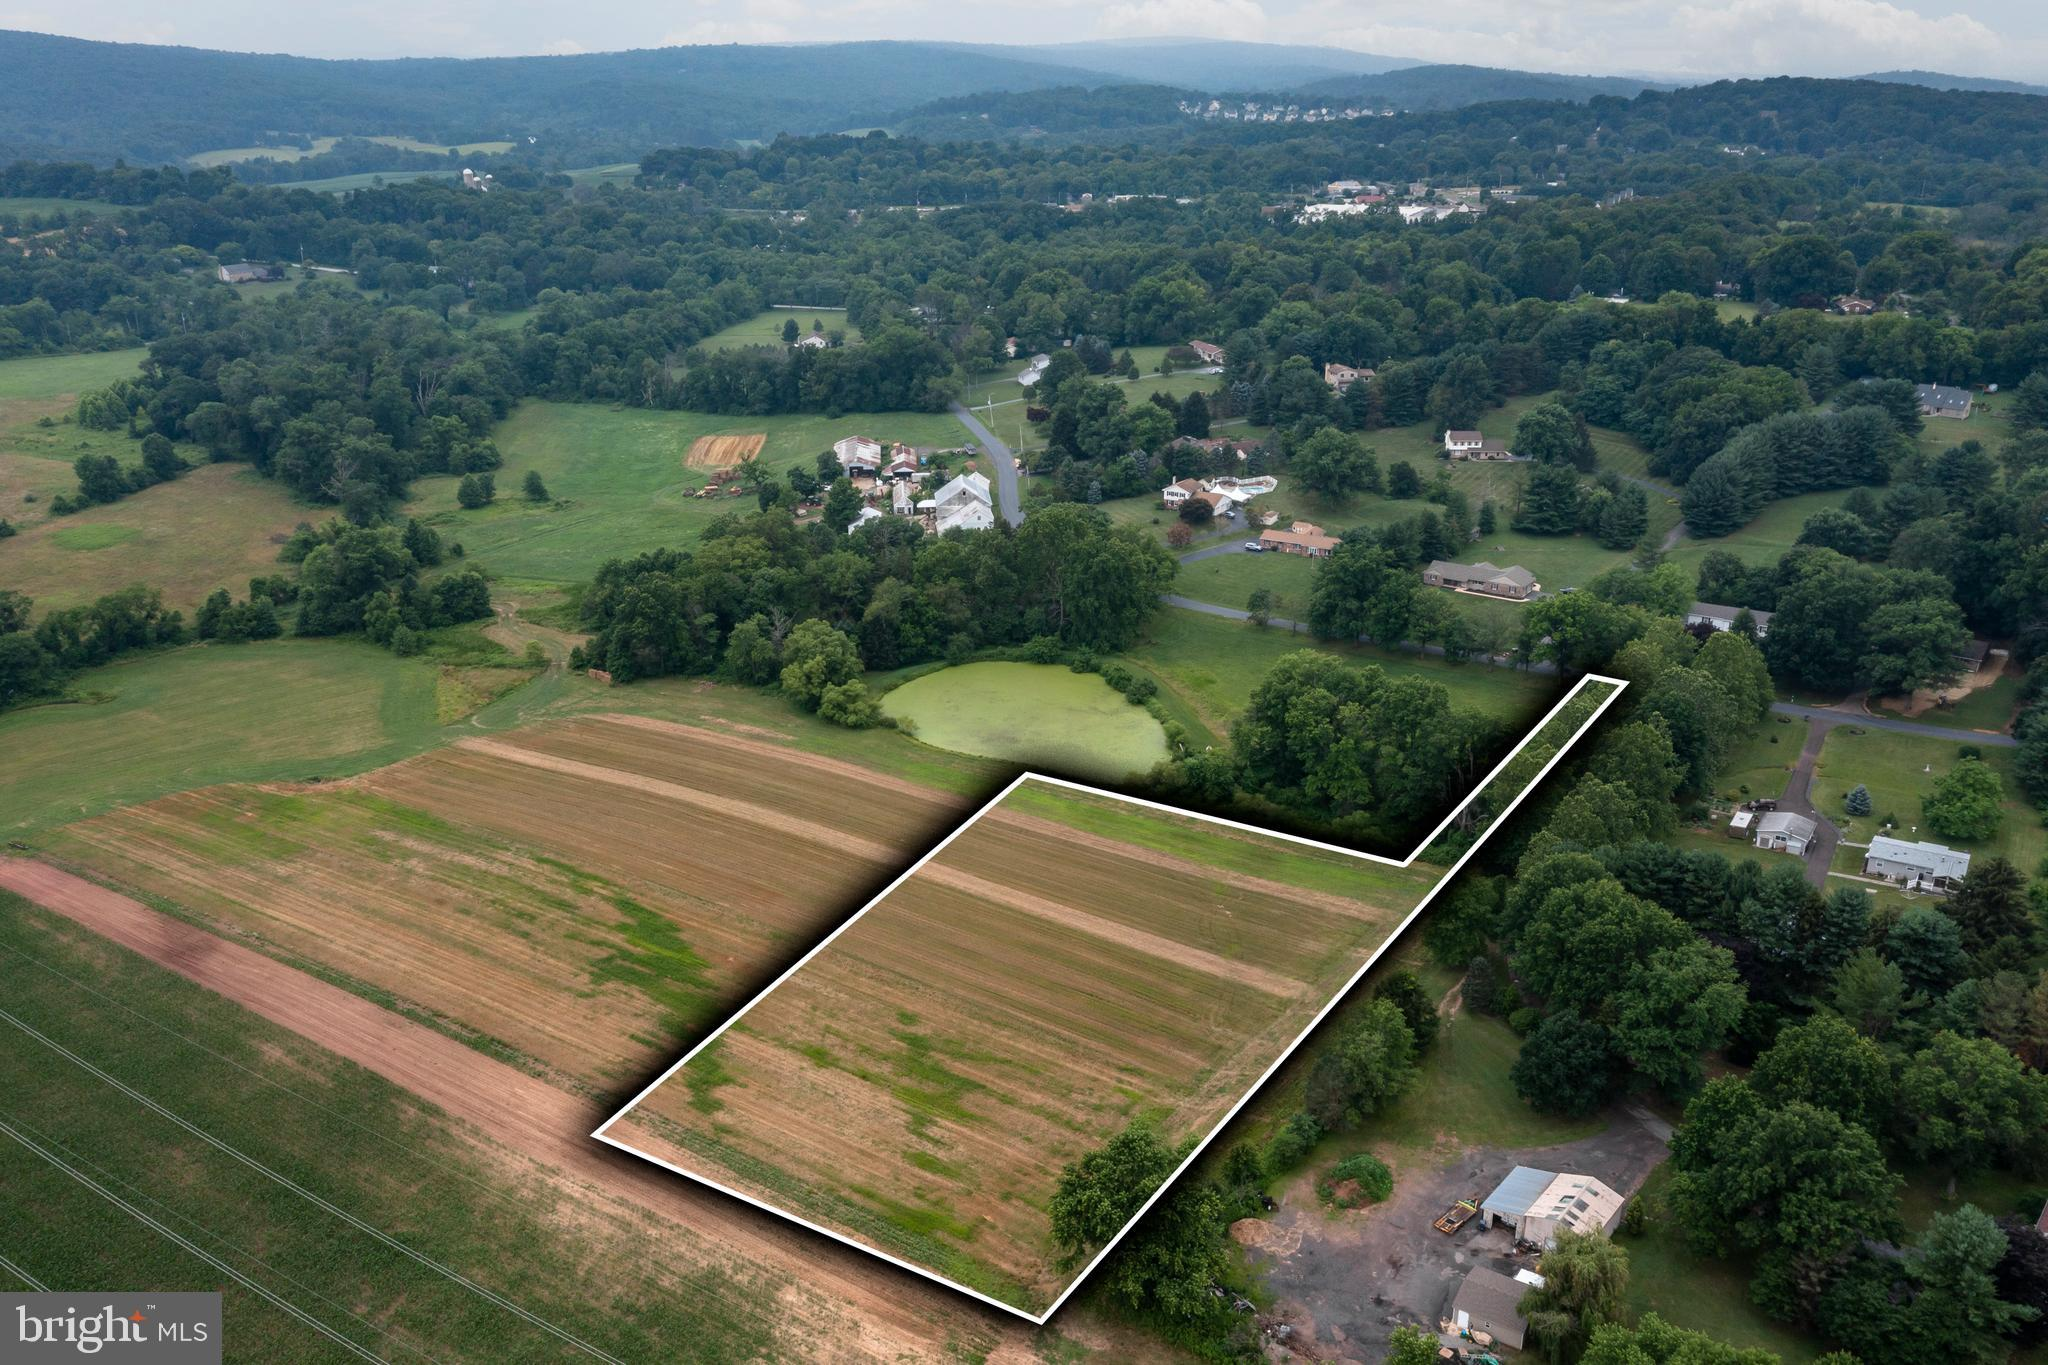 Great opportunity to build your dream home on a scenic, level, 3-acre flag lot with a view of the neighboring pond and farm! This peaceful country homesite is tucked away enough for you to fully experience the peace and serenity of rural living, while also offering easy access to routes 100 & 422. Property requires on-site sewer and water. Bring your own builder and surround yourself with the beauty of Chester County!